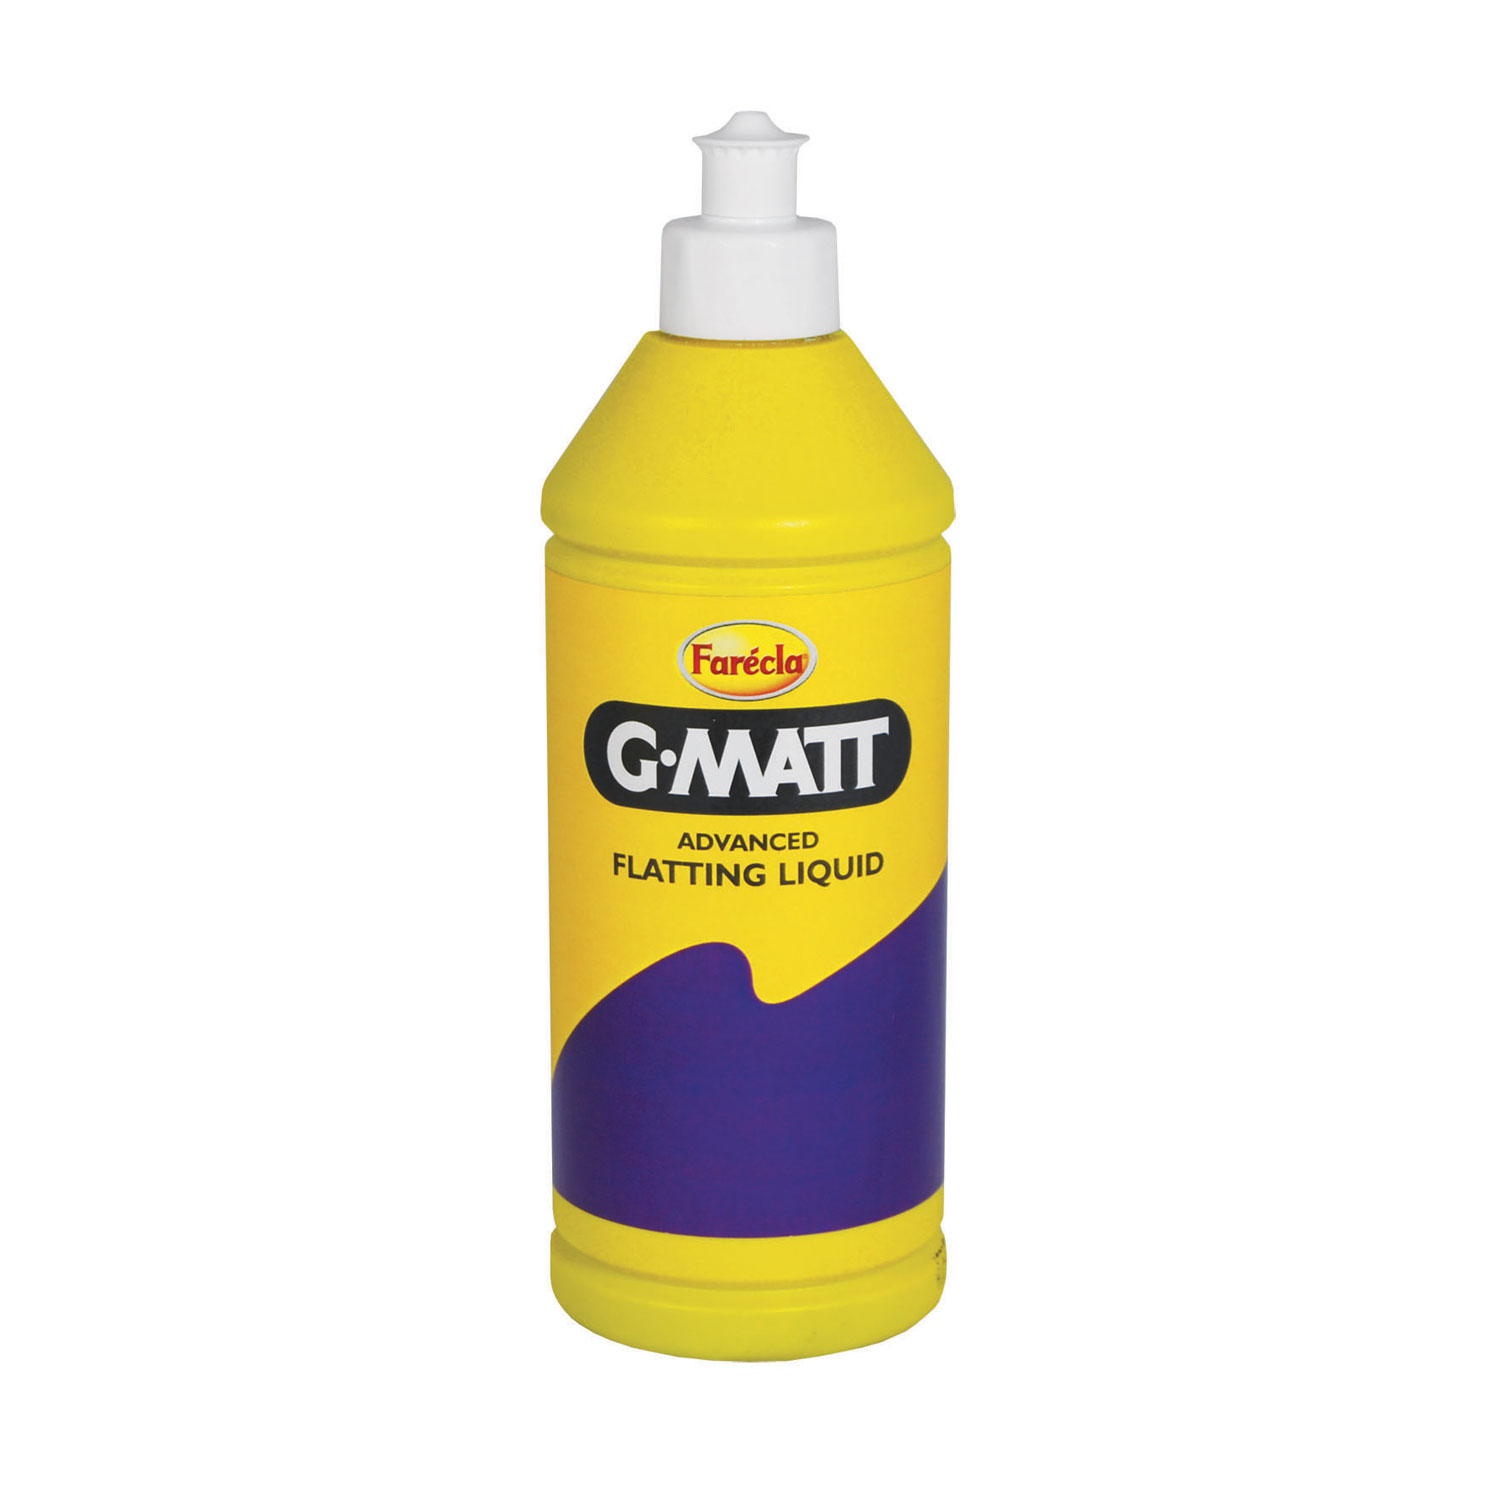 G.MATT Advanced Flatting Liquid